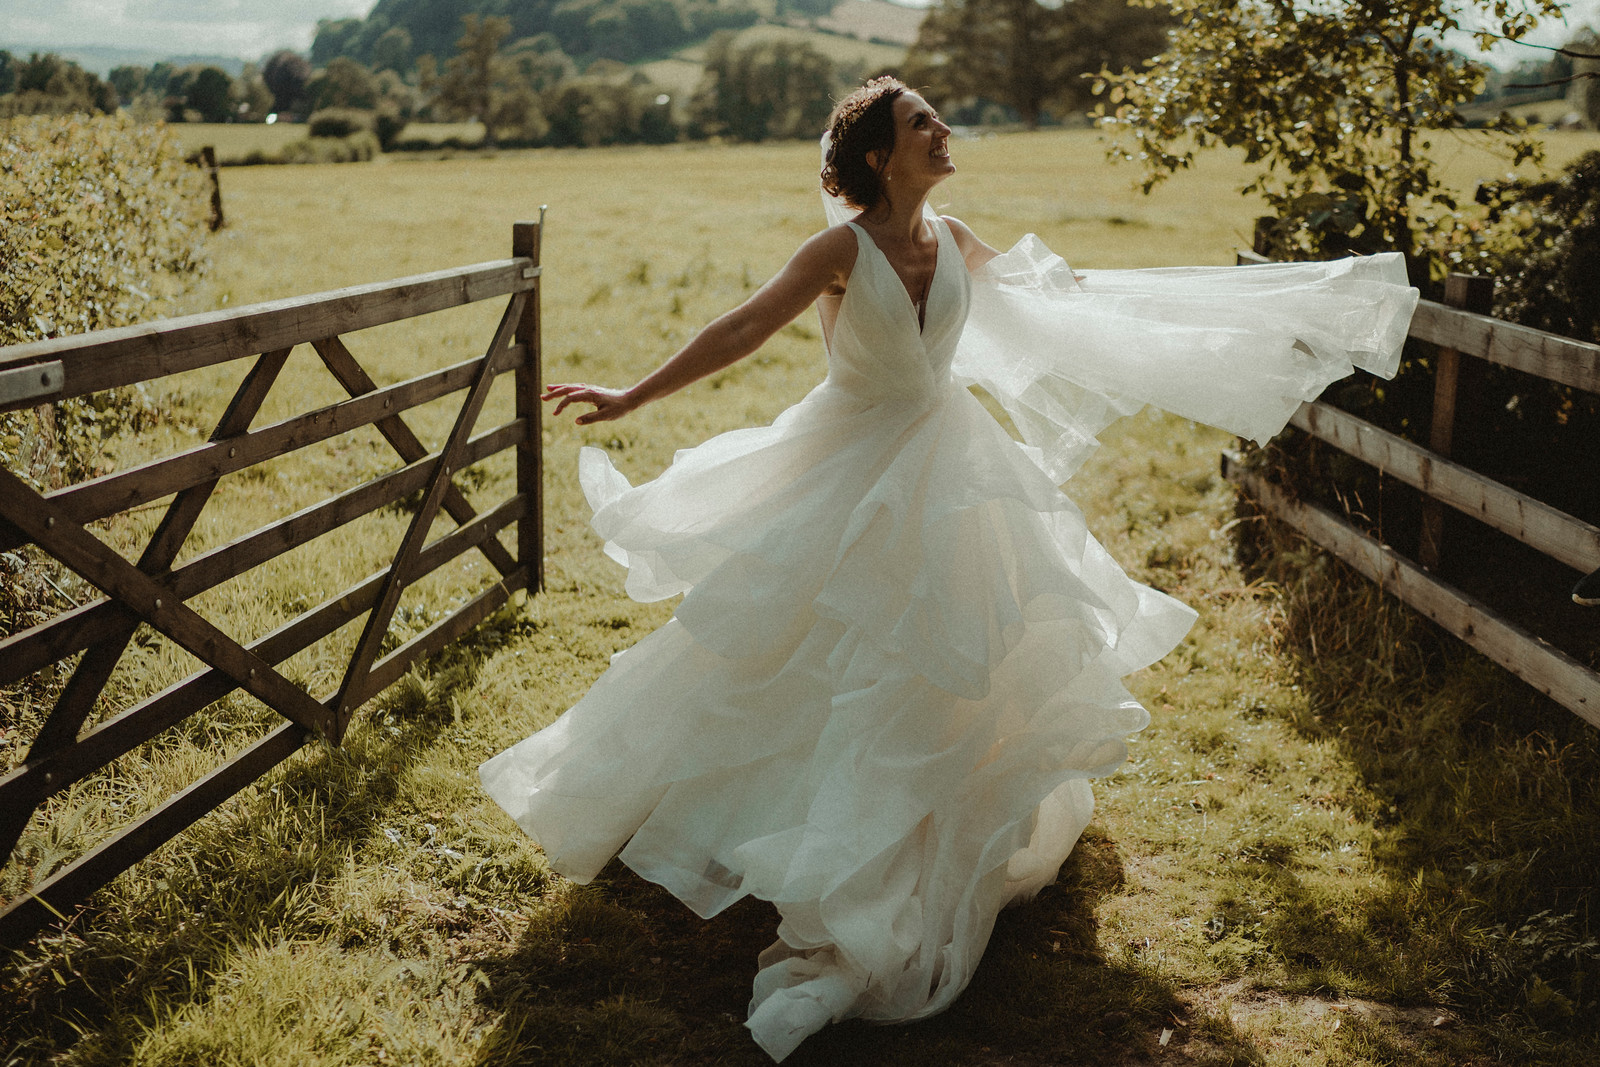 Bride dances in the middle of the scenery of her wedding venue  Wedding photo